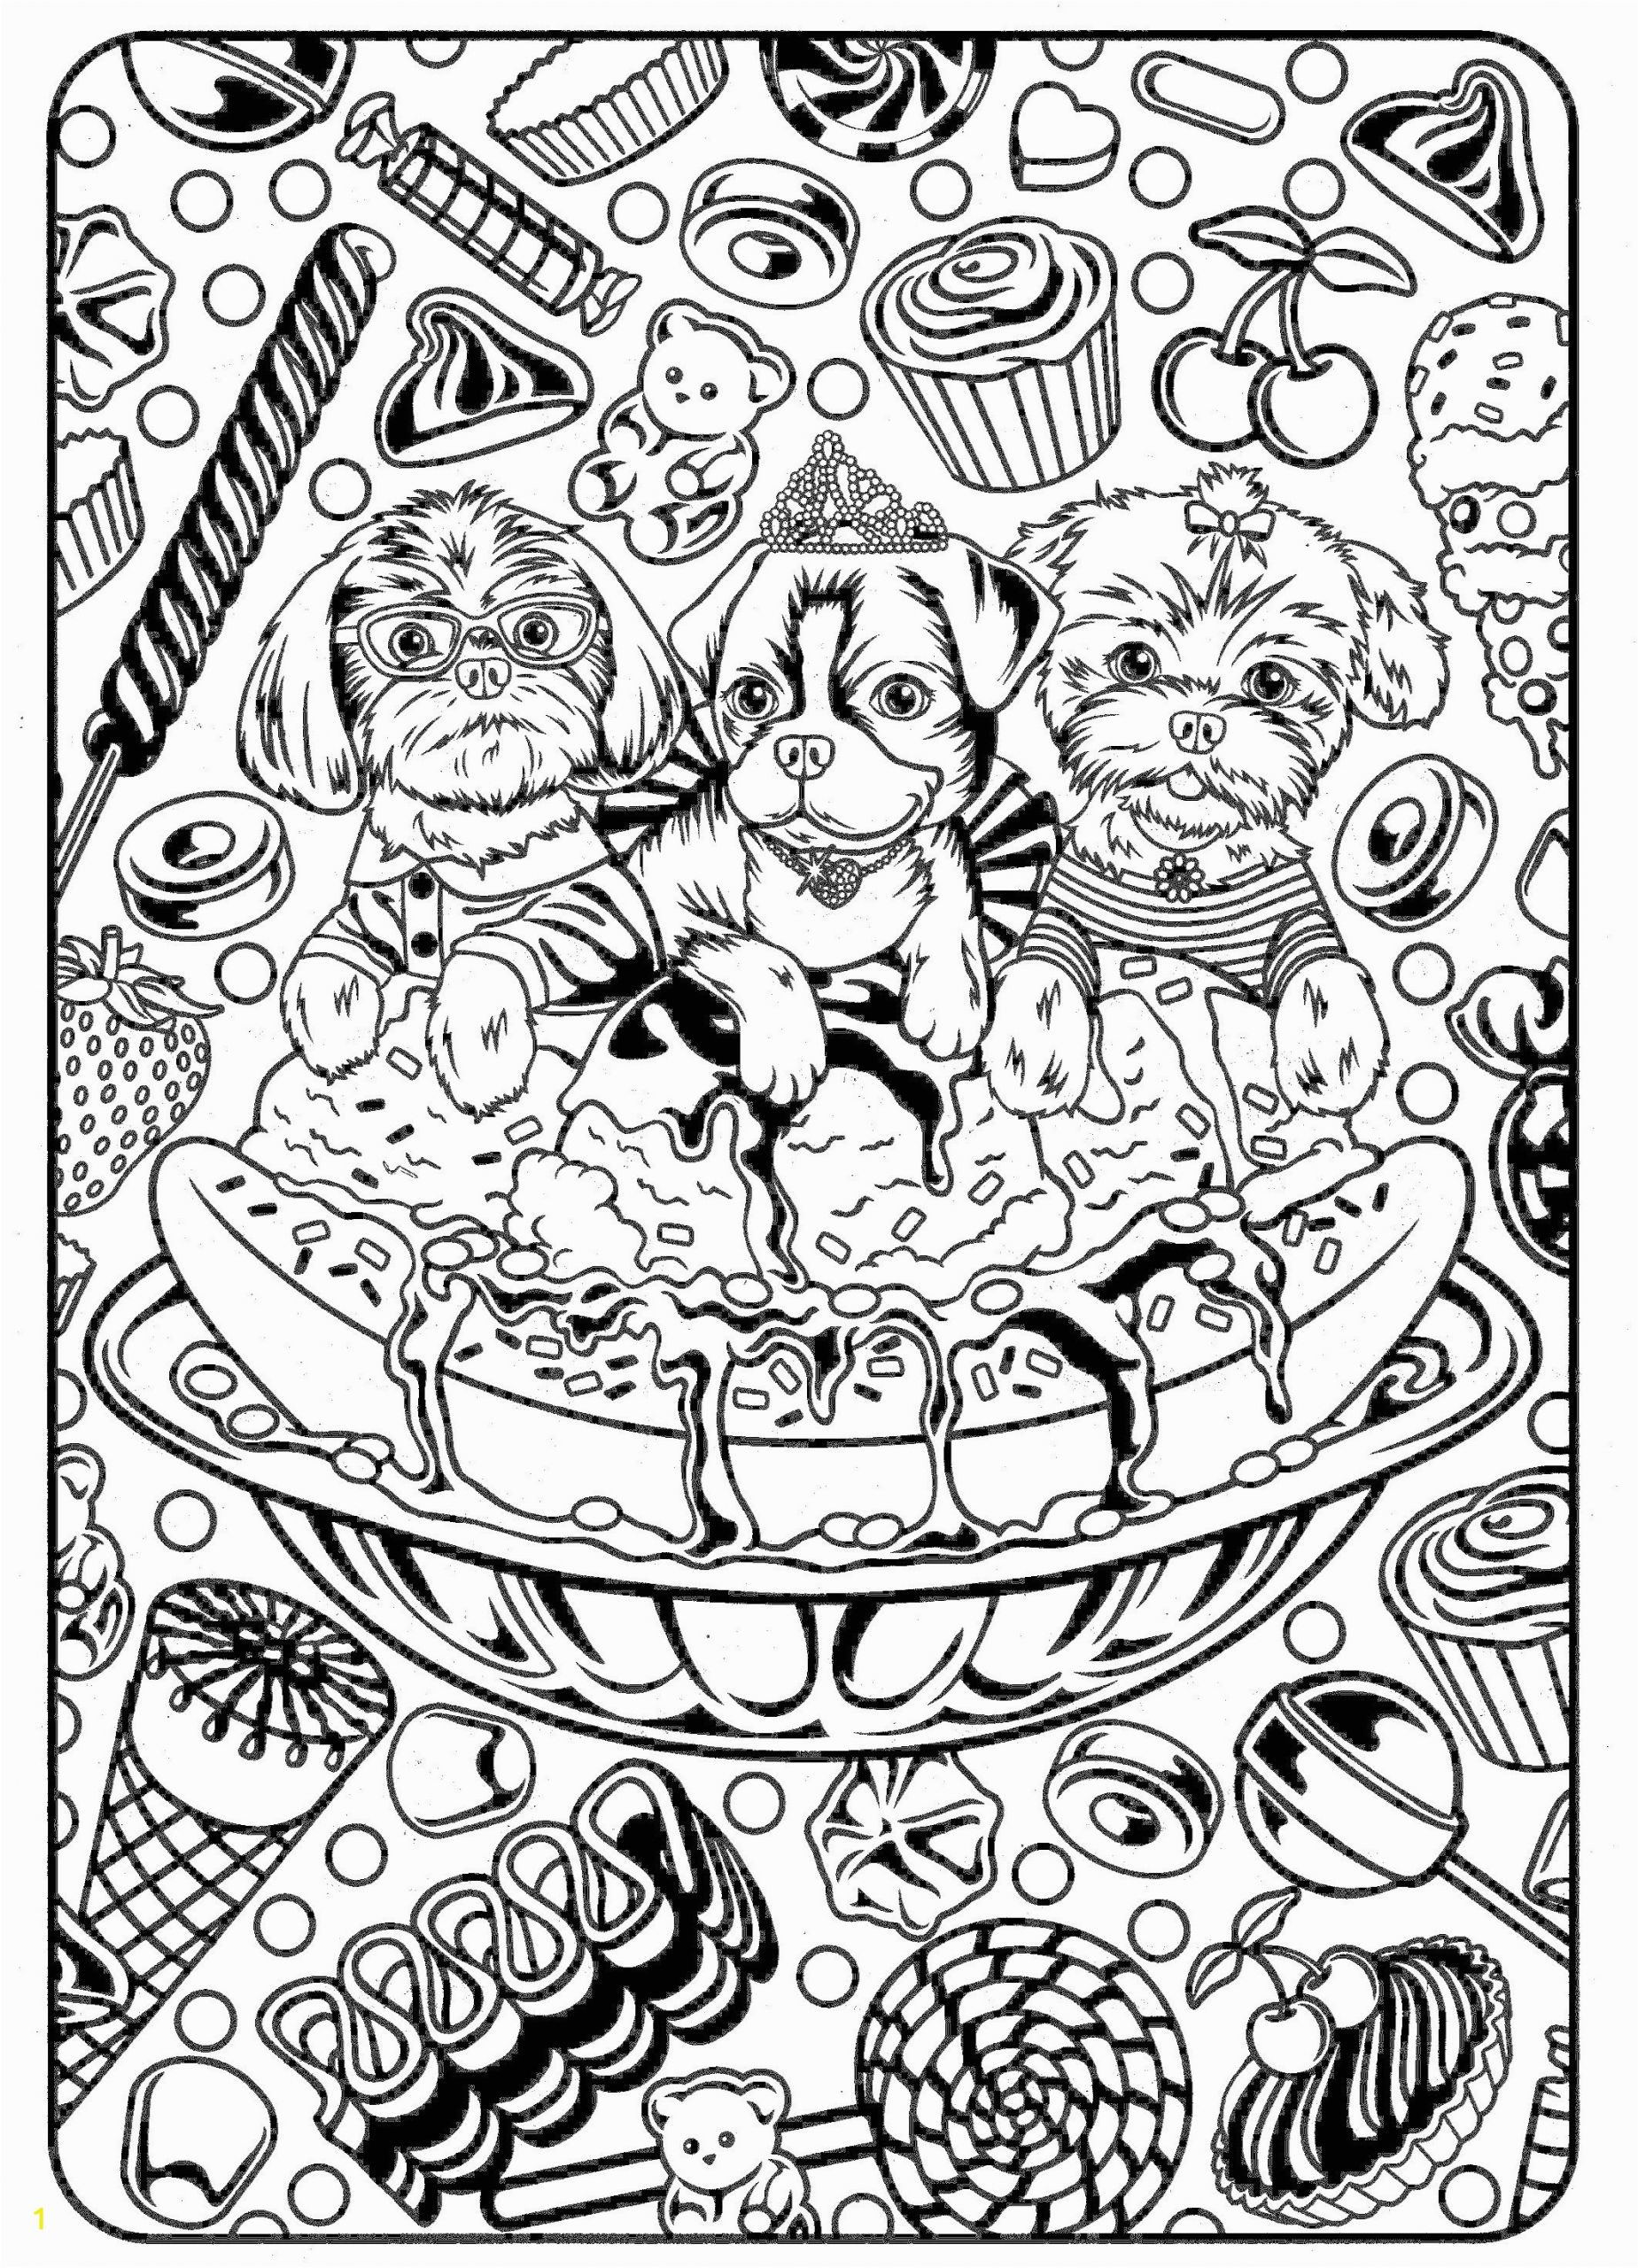 coloring page for free to print luxury photography free coloring pages elegant crayola pages 0d archives se telefonyfo of coloring page for free to print